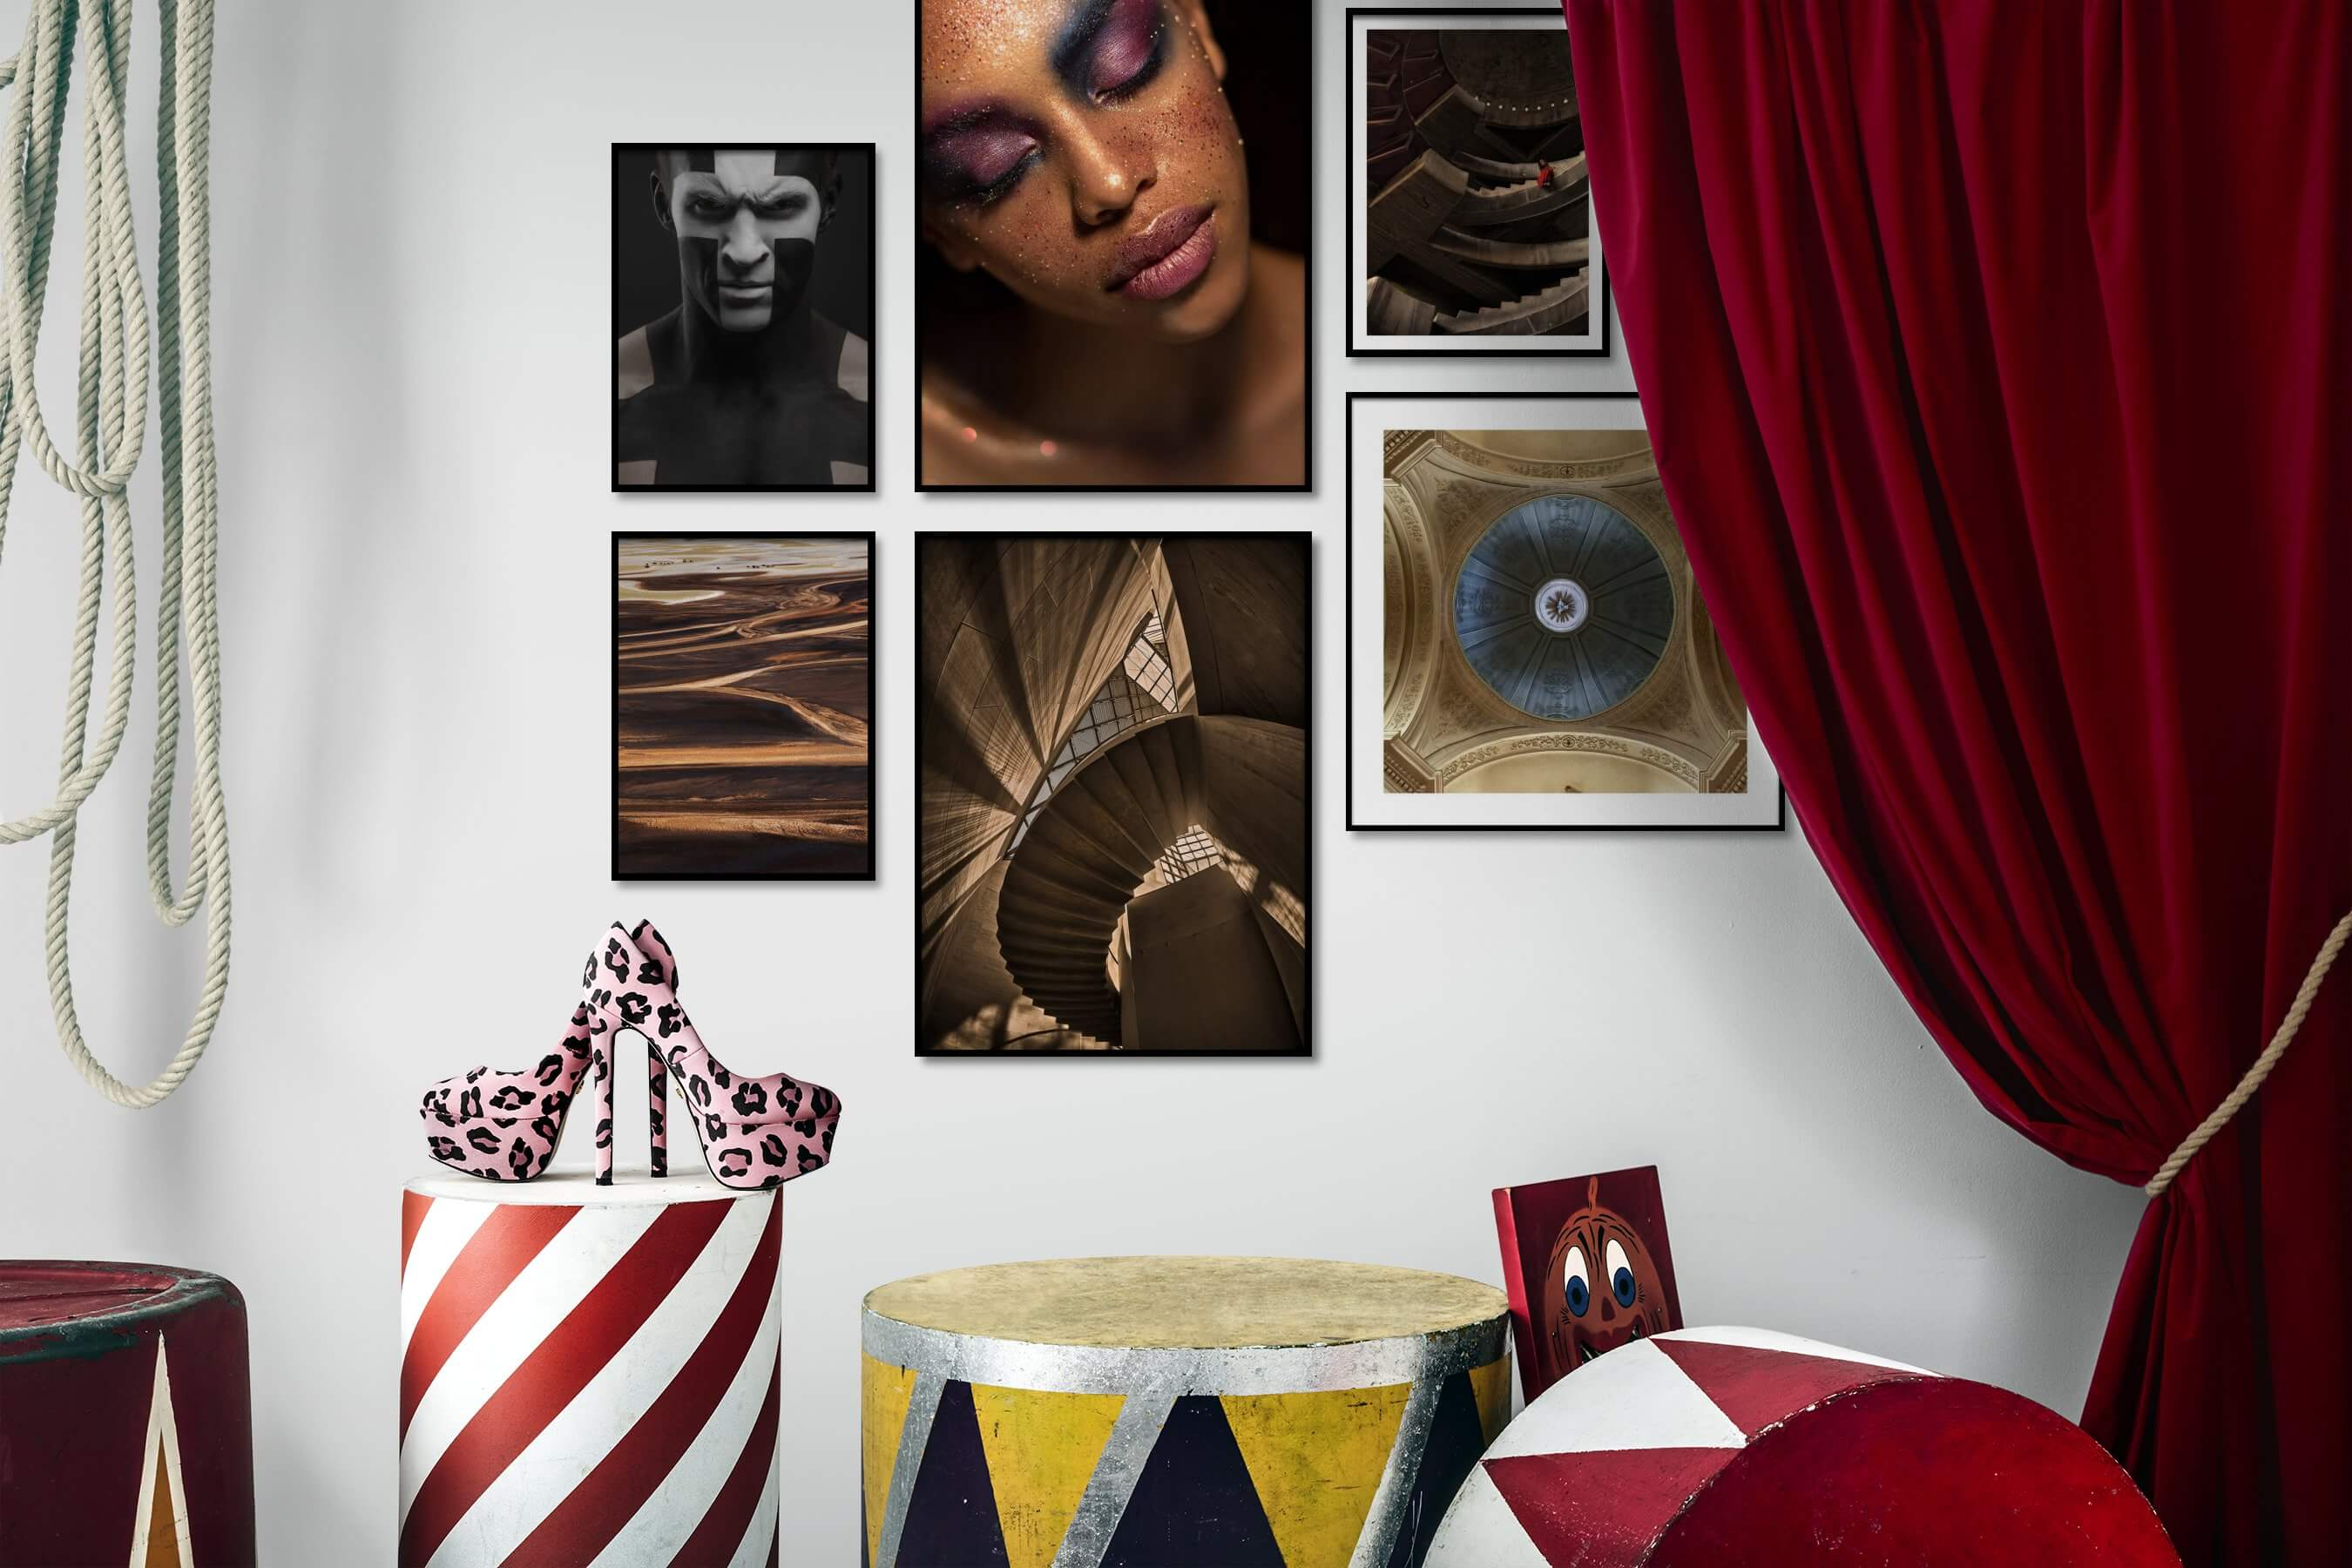 Gallery wall idea with six framed pictures arranged on a wall depicting Fashion & Beauty, For the Moderate, Nature, For the Maximalist, and Vintage